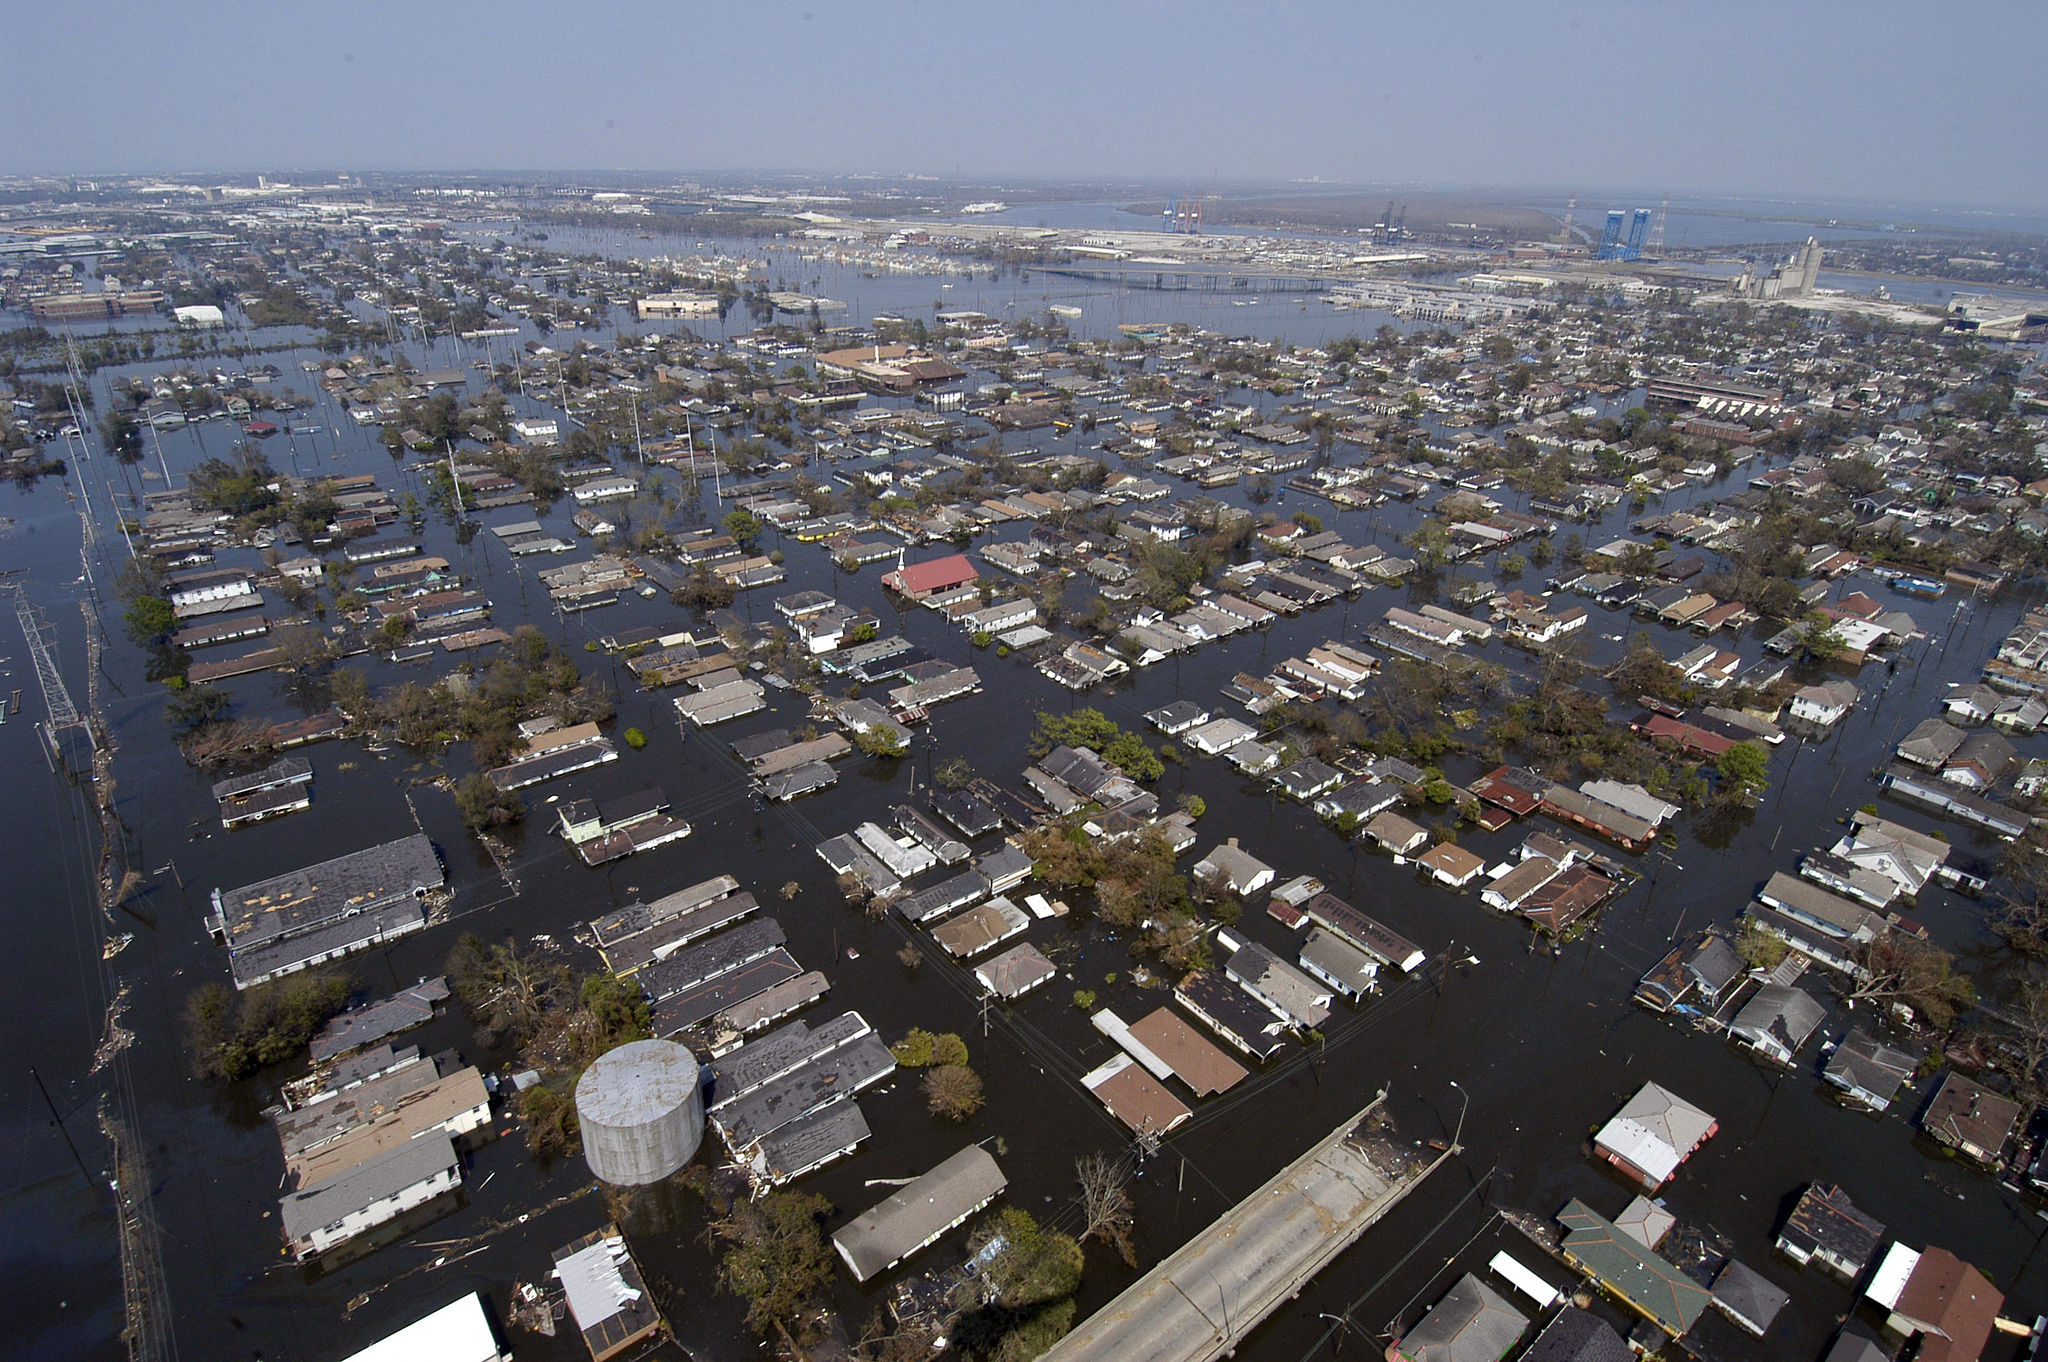 new orleans la homes with New Orleans La Remembering Hurricane Katrina 10 Years Later on North Carolina in addition File The Haunted Mansion together with High End Downtown Apartments Free Rent Parking additionally 3 as well 12.